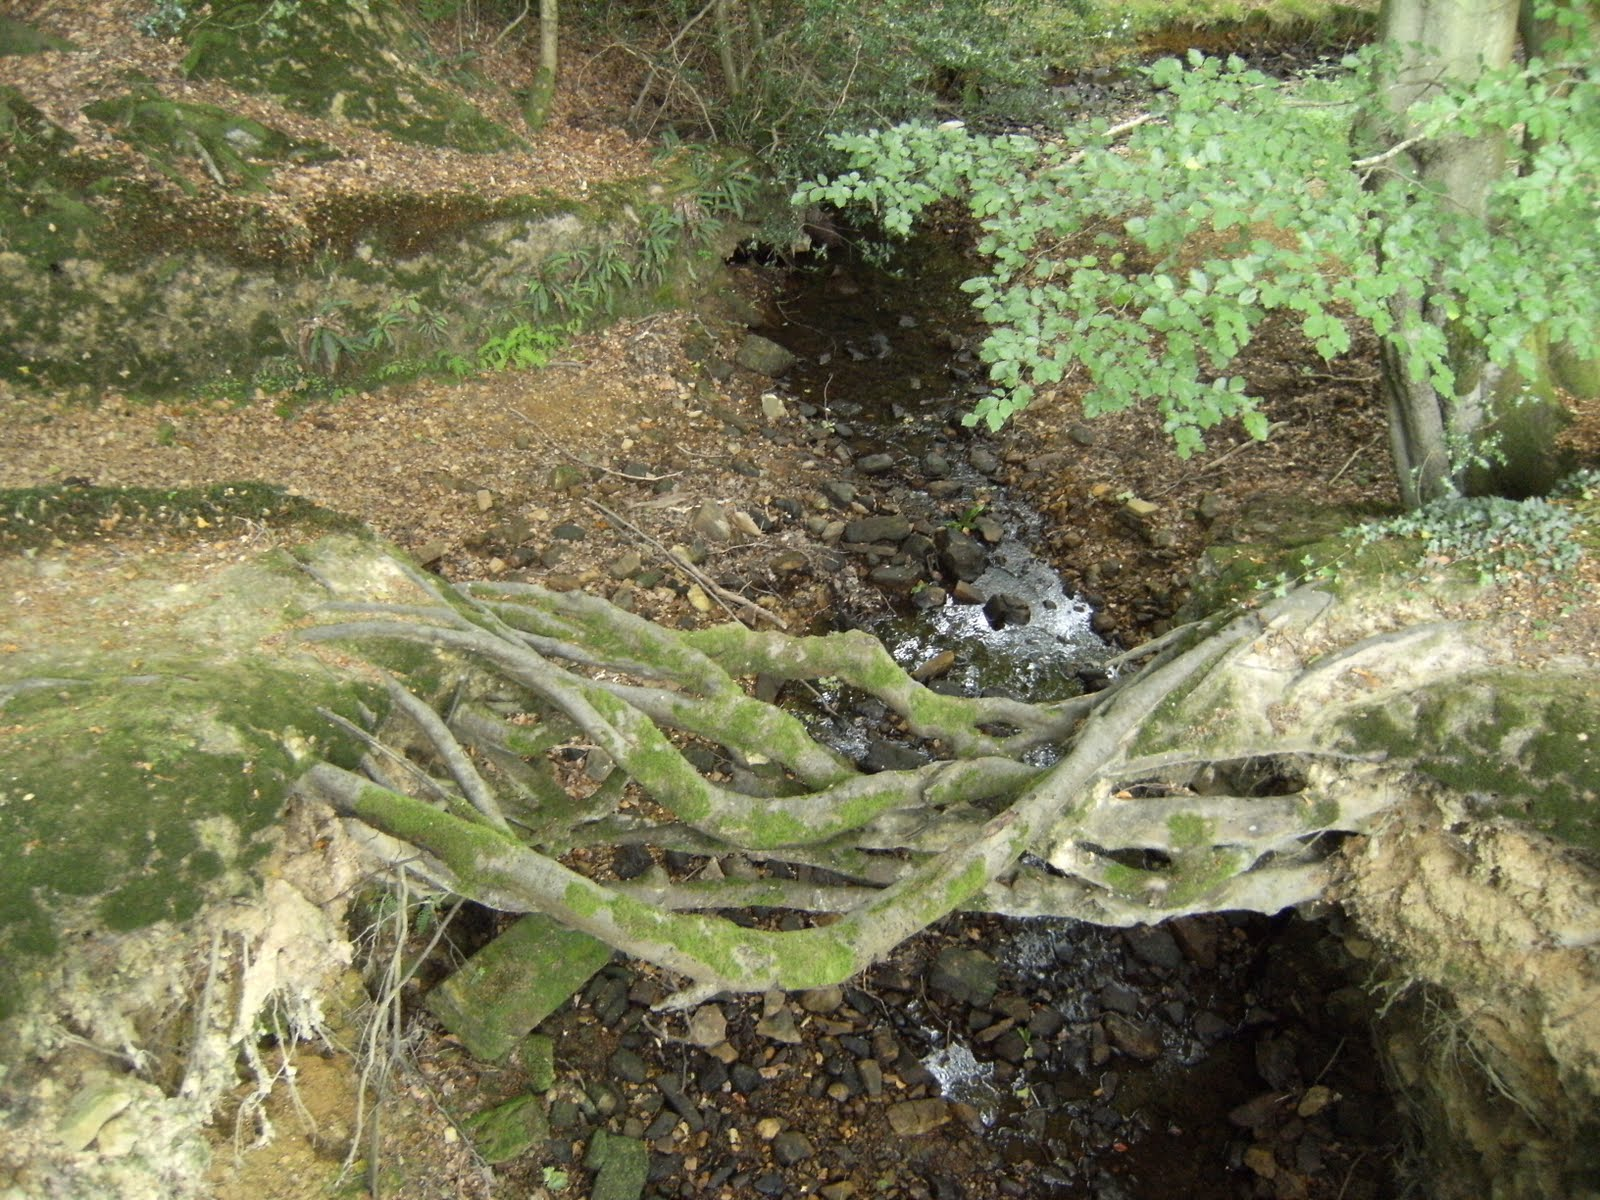 DSCF9306 Tree-root bridge